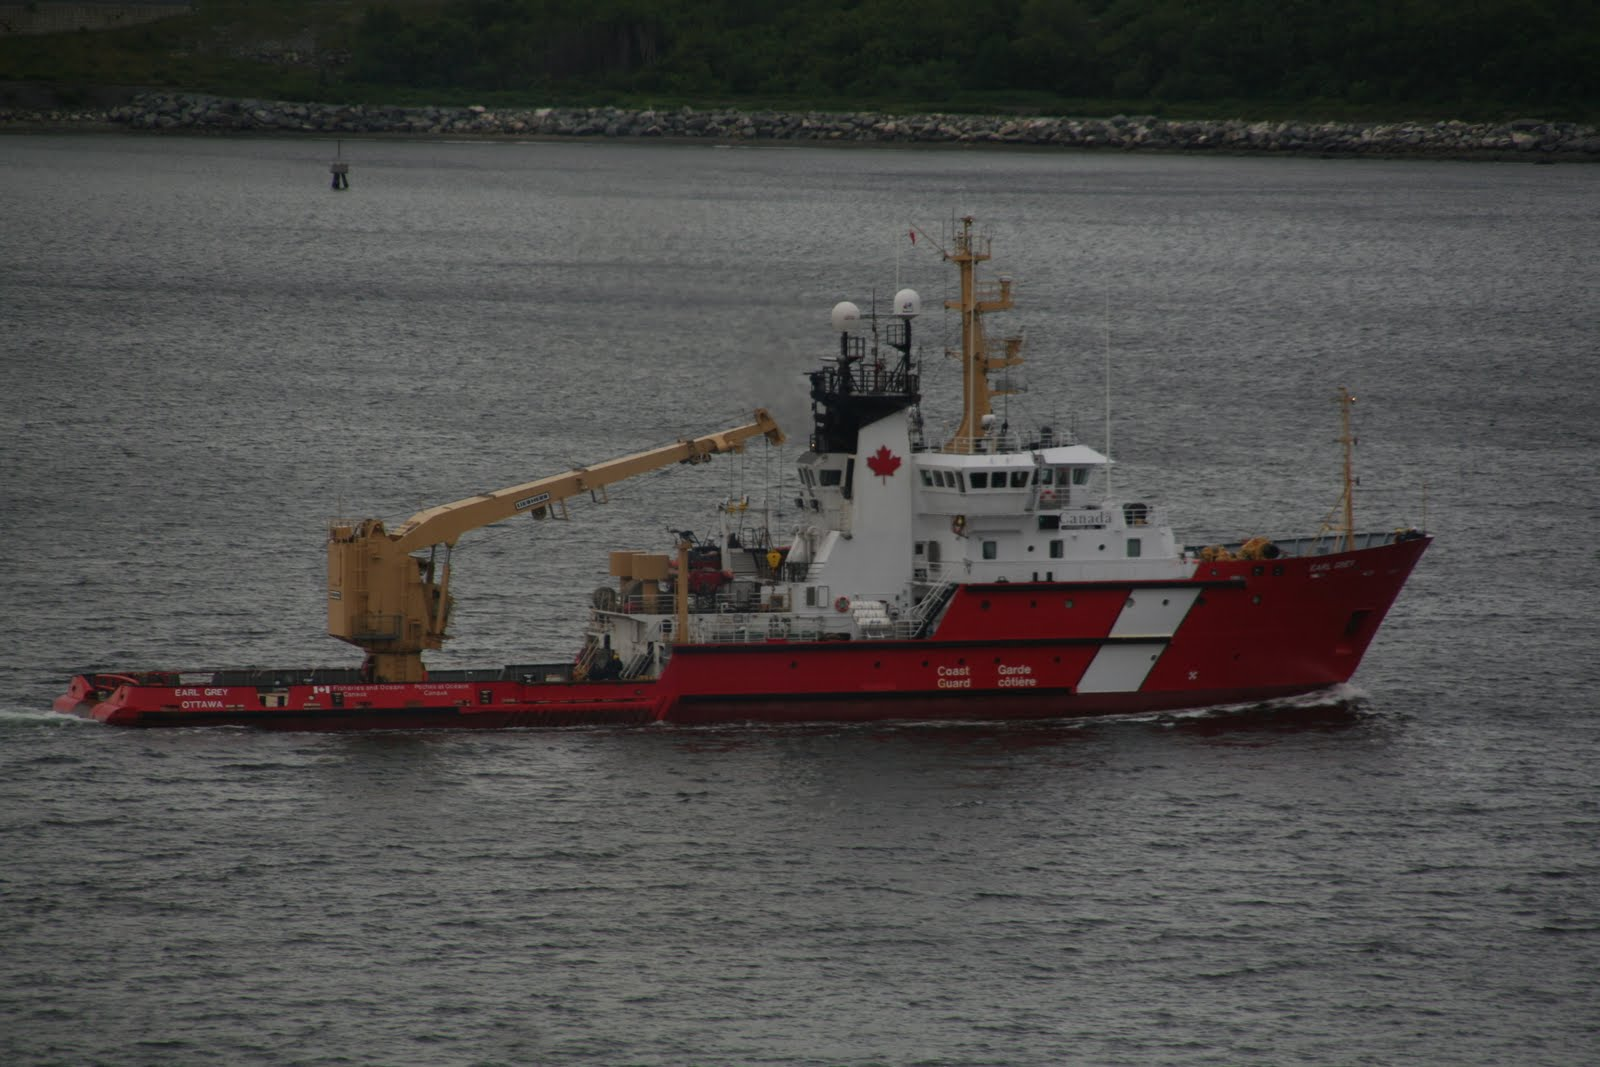 activity coast guard sexual ship